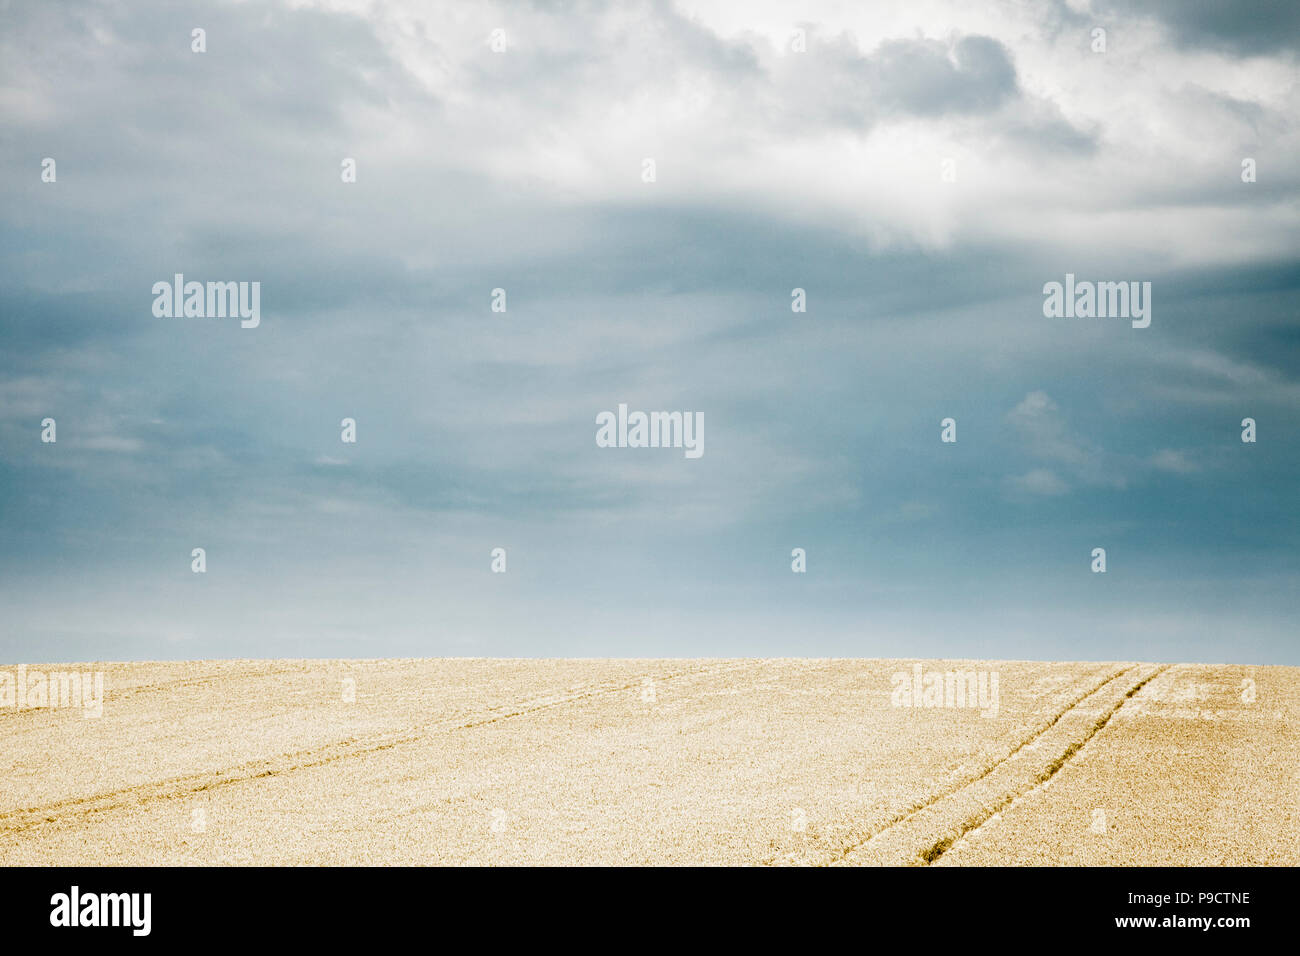 Ripe golden wheat field under a stormy sky, France, Europe - Stock Image